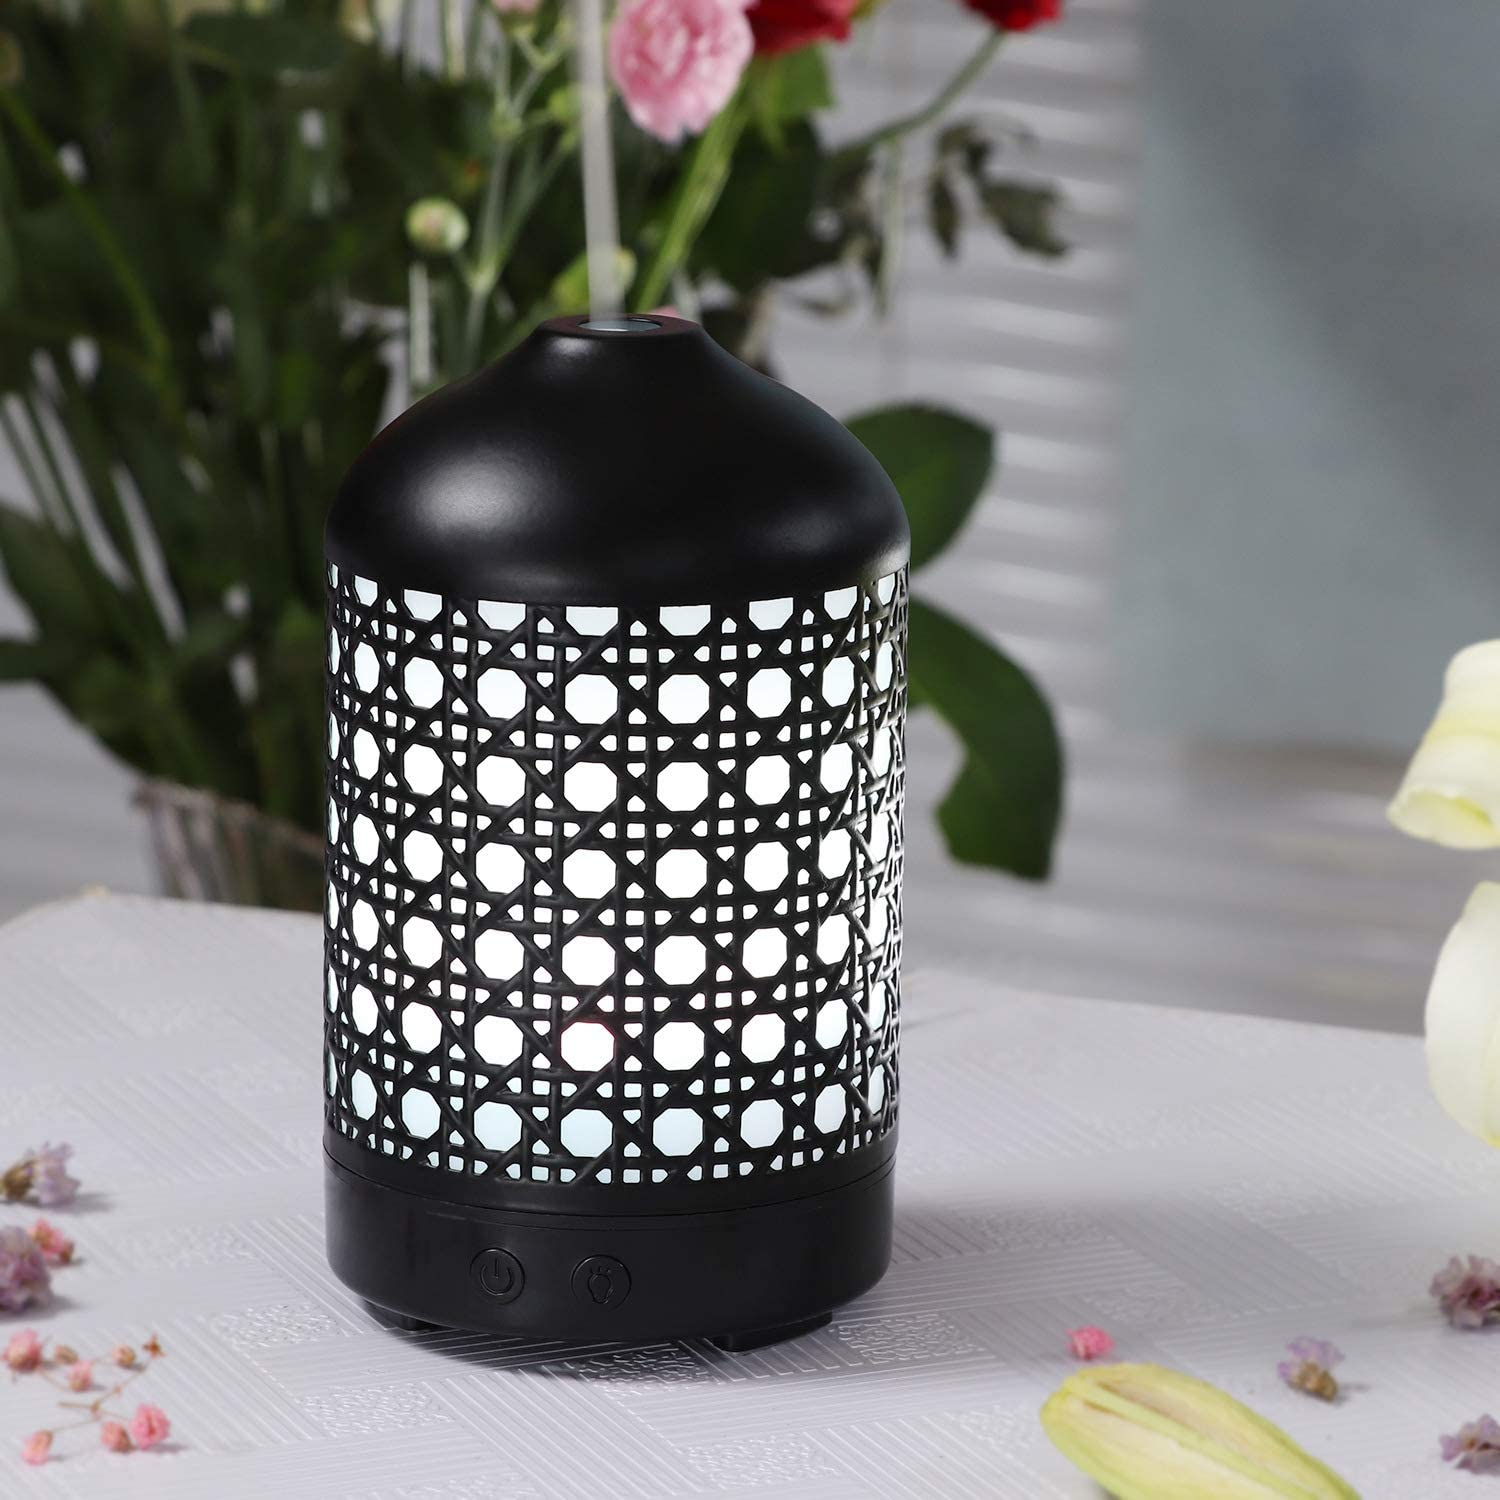 Cool Mist Humidifier 100ml Small Portable Max 67% OFF Quiet 40% OFF Cheap Sale Humidifiers for